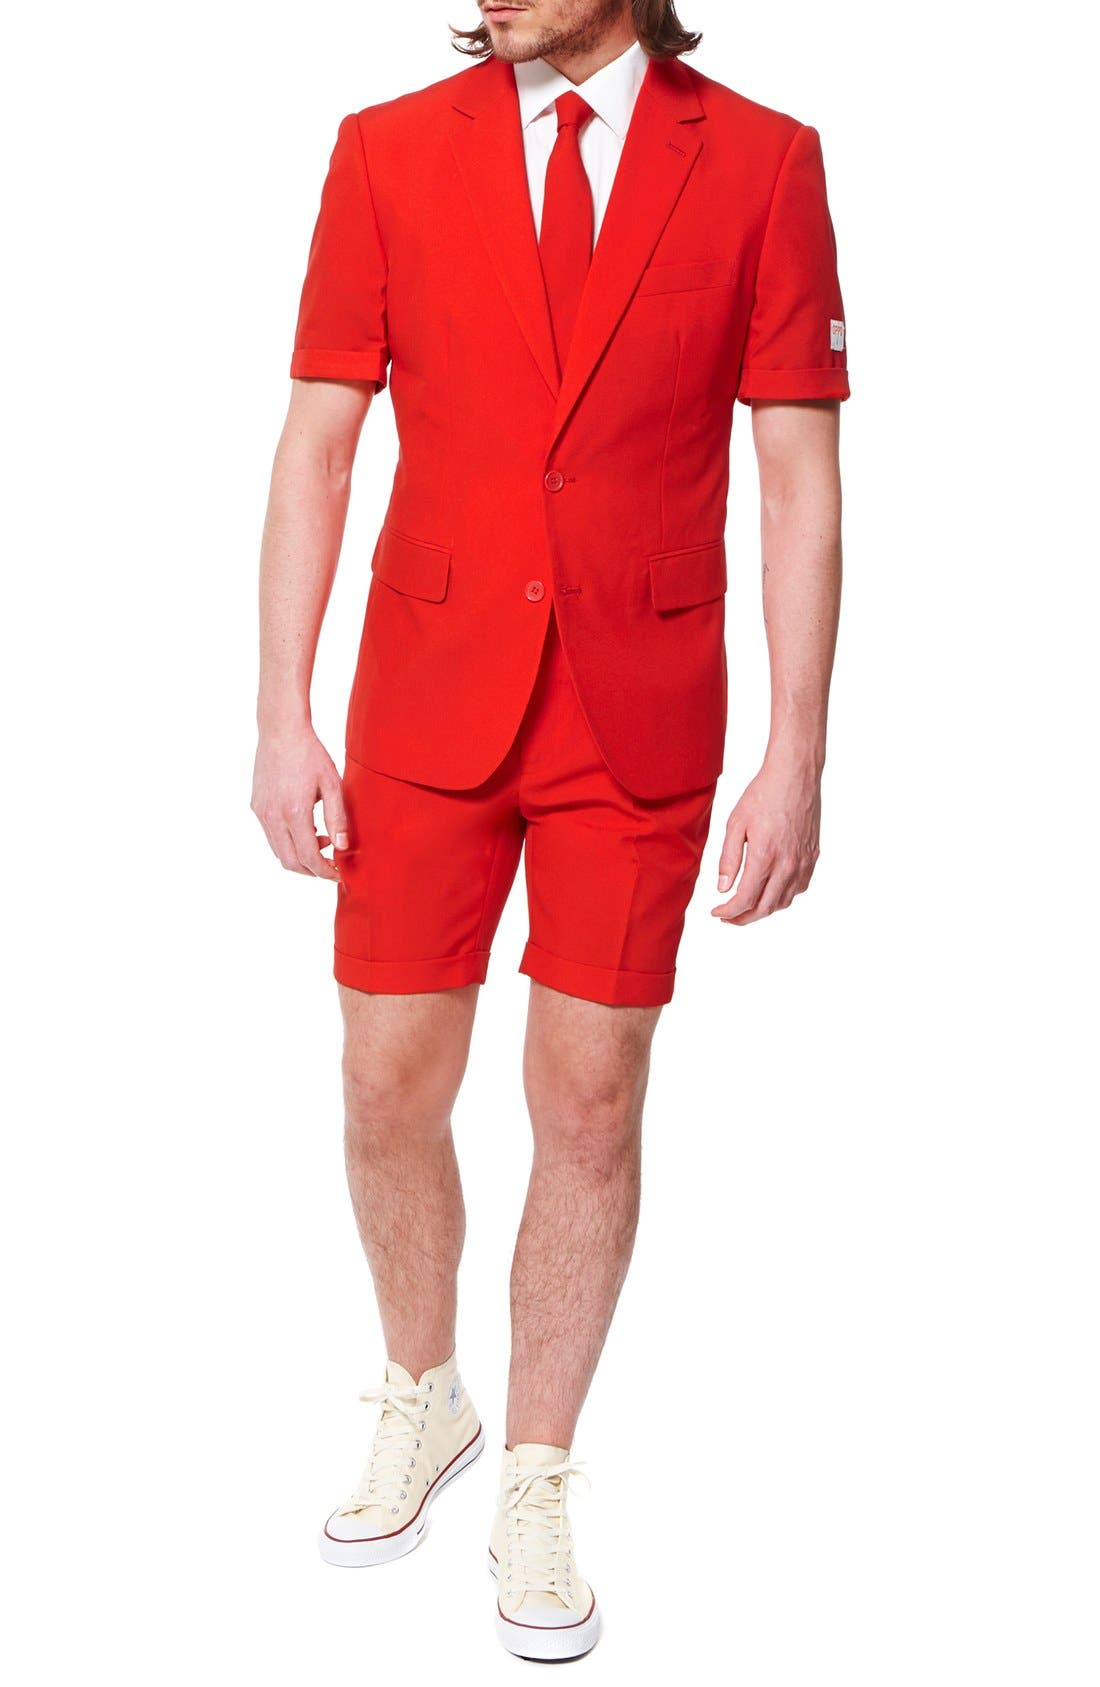 'Summer Red Devil' Trim Fit Short Suit with Tie,                             Alternate thumbnail 4, color,                             Medium Red